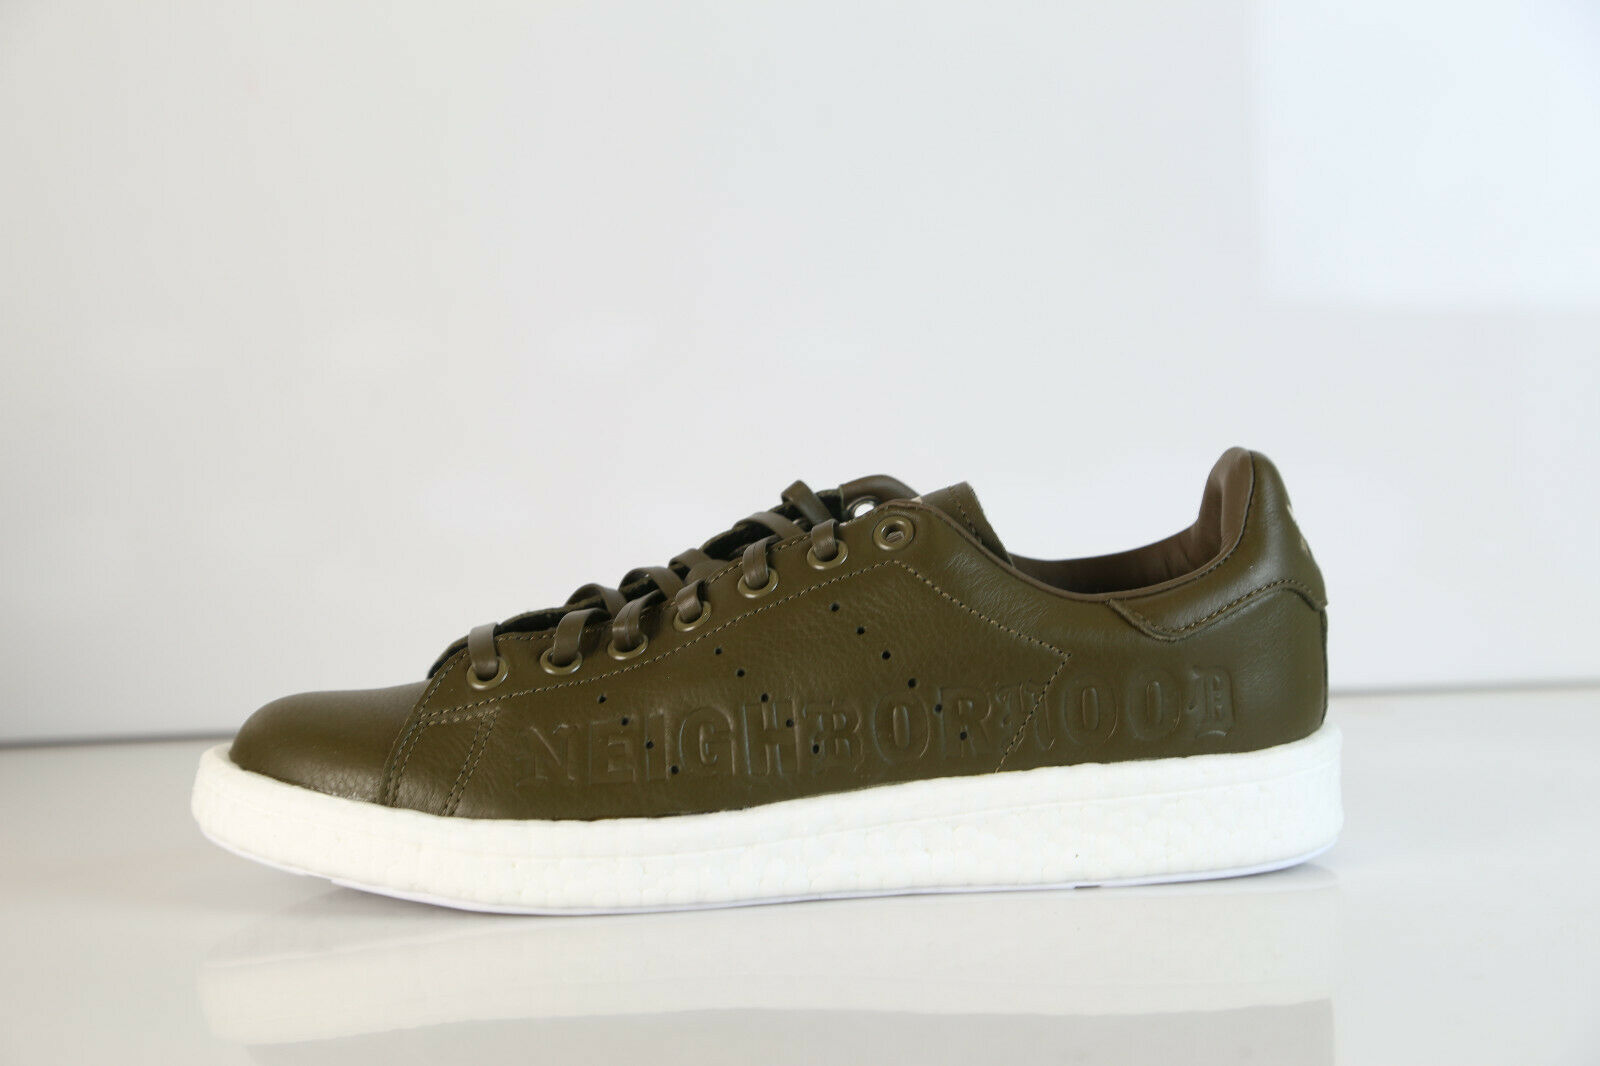 new styles 587a1 a726c Adidas Stan Smith Boost Boost Boost NBHD Neighborhood Olive Grün B37342 8  d7add1